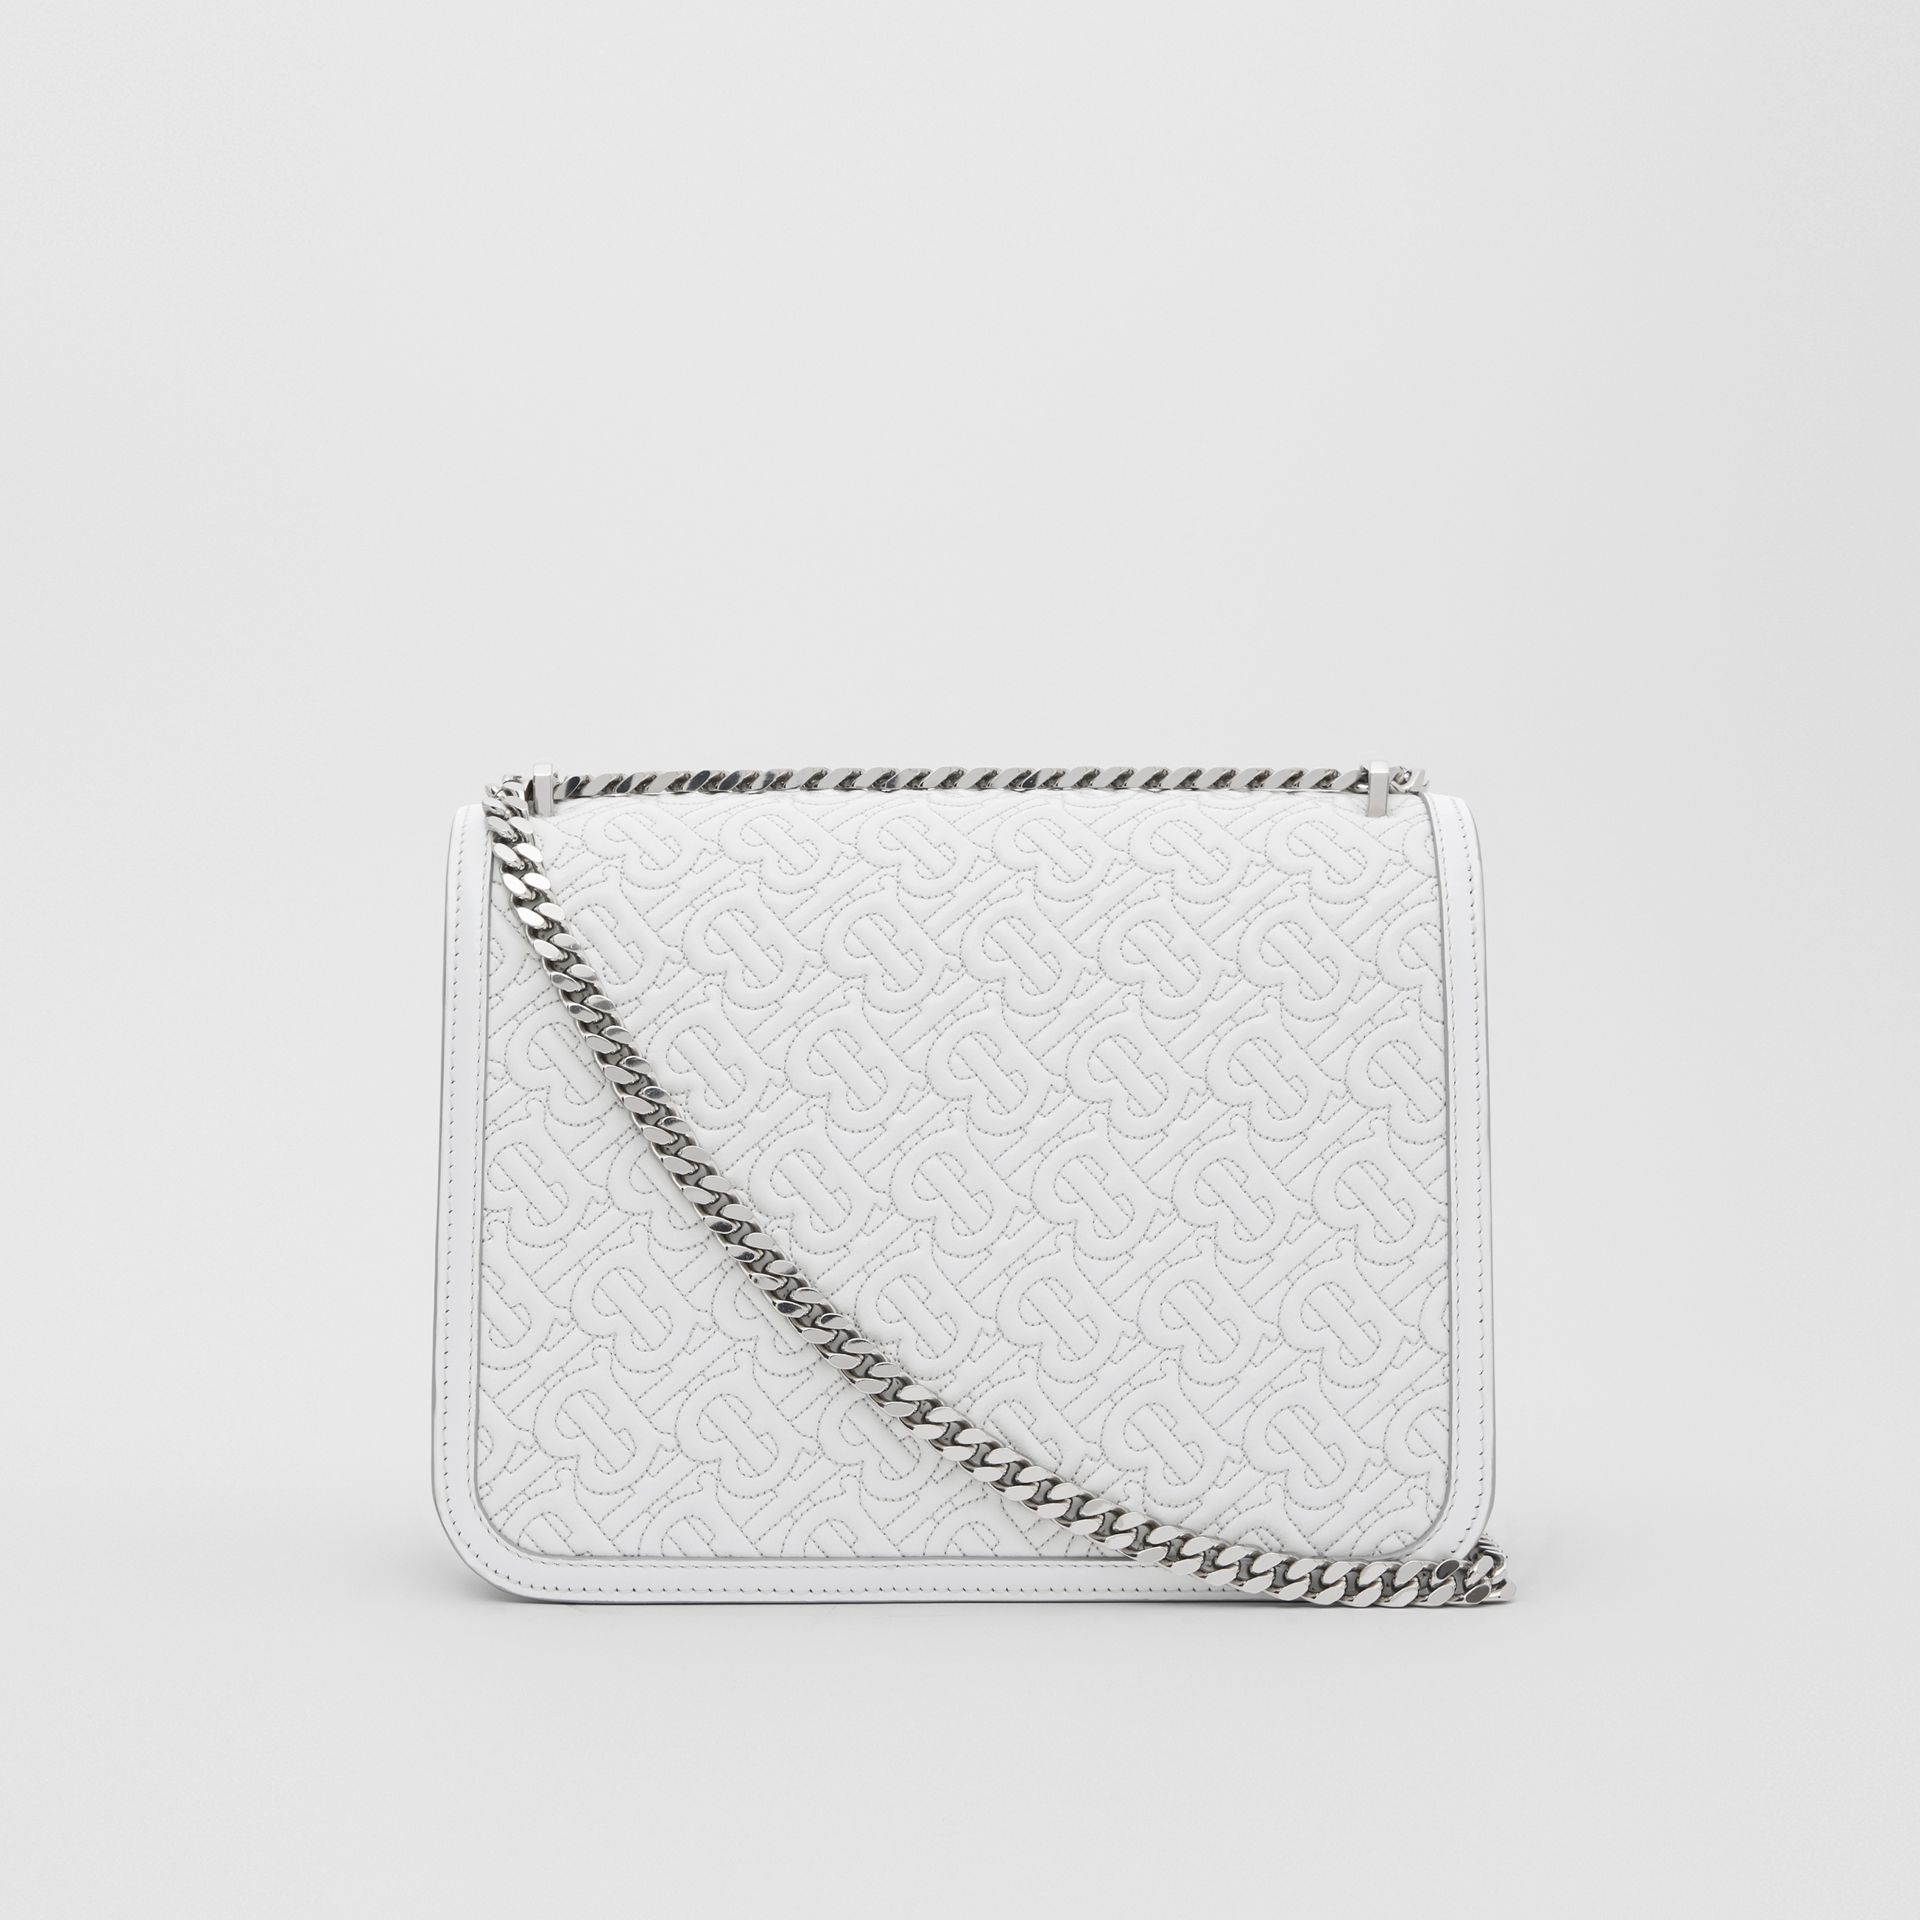 Medium Quilted Monogram Lambskin TB Bag in Light Pebble Grey - Women | Burberry - gallery image 7